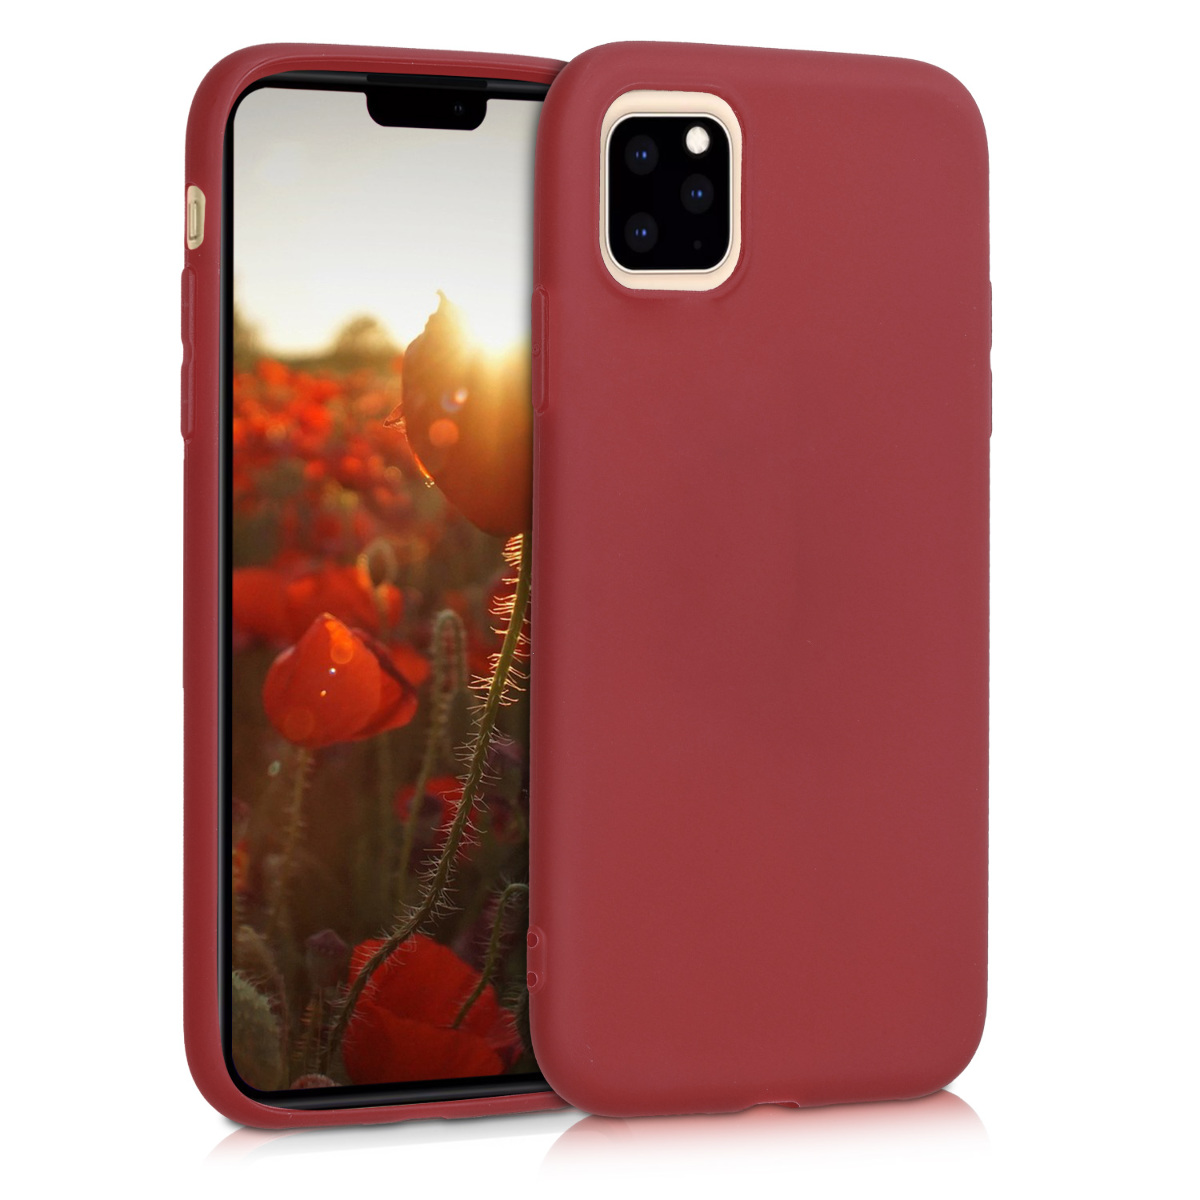 KW Θήκη Σιλικόνης Apple iPhone 11 - Soft Flexible Shock Absorbent - Red Matte (49787.09)